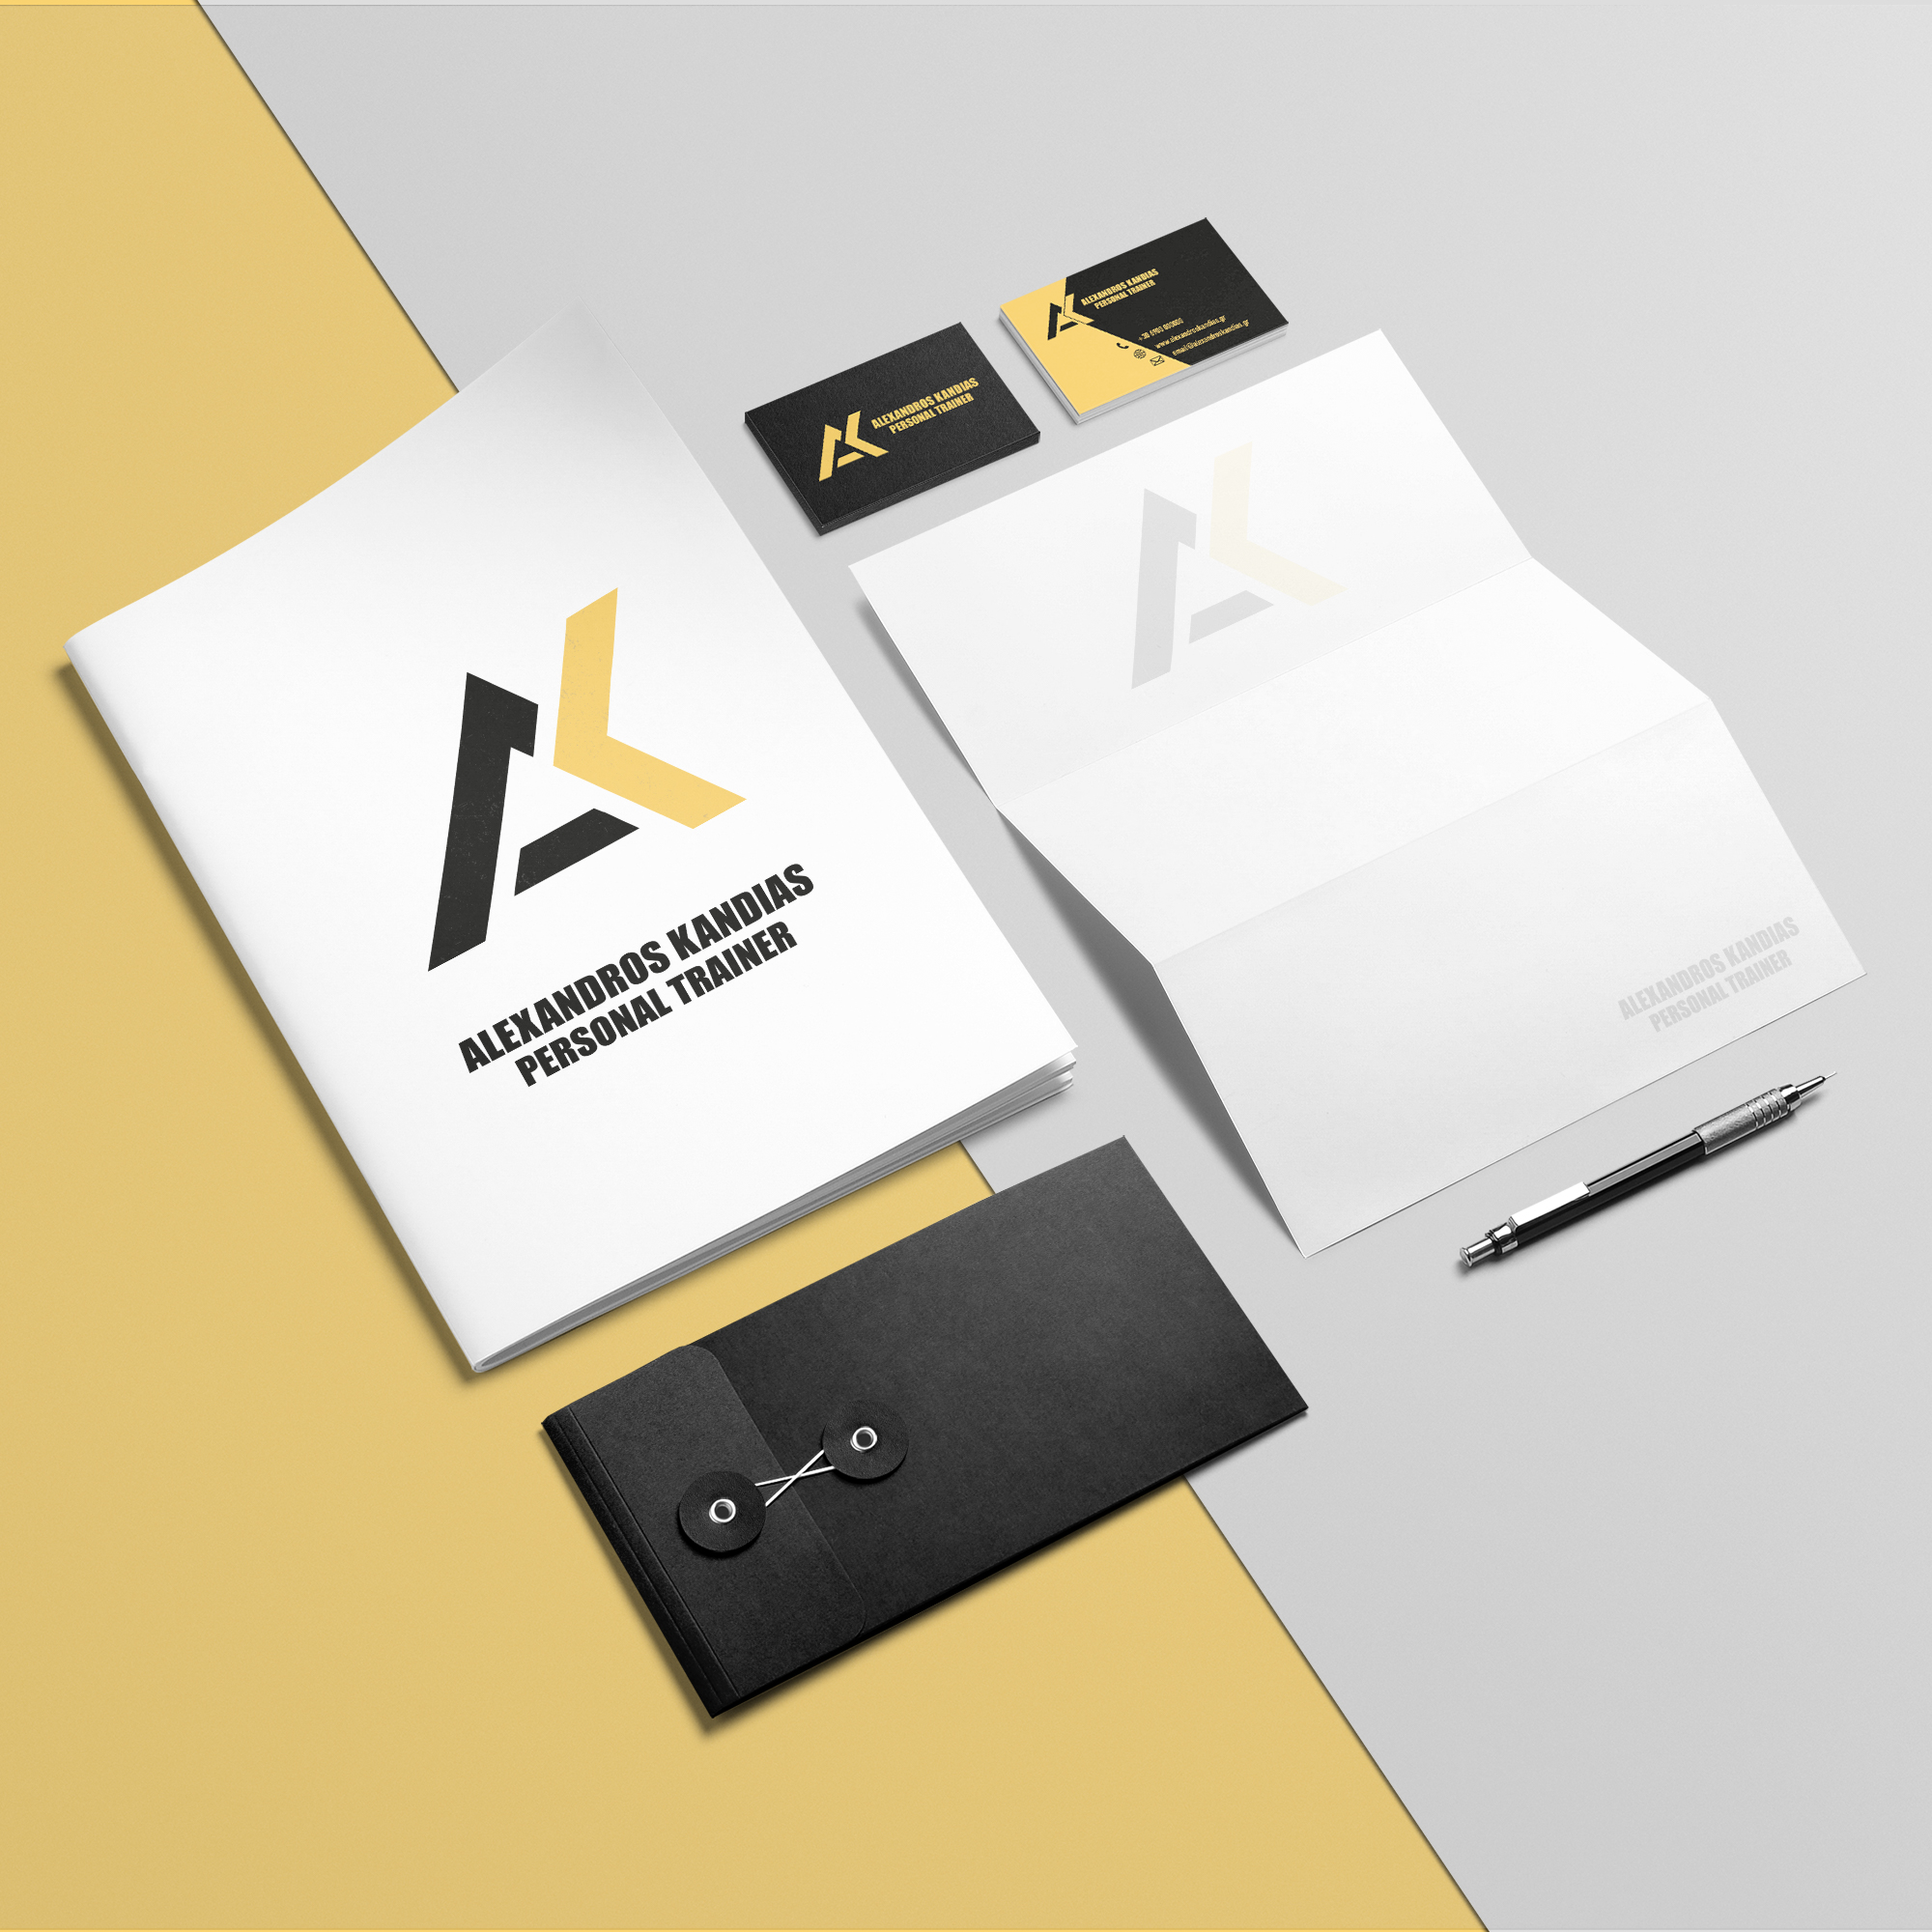 Alexandros Kandias' branding in A4 sheets and business cards